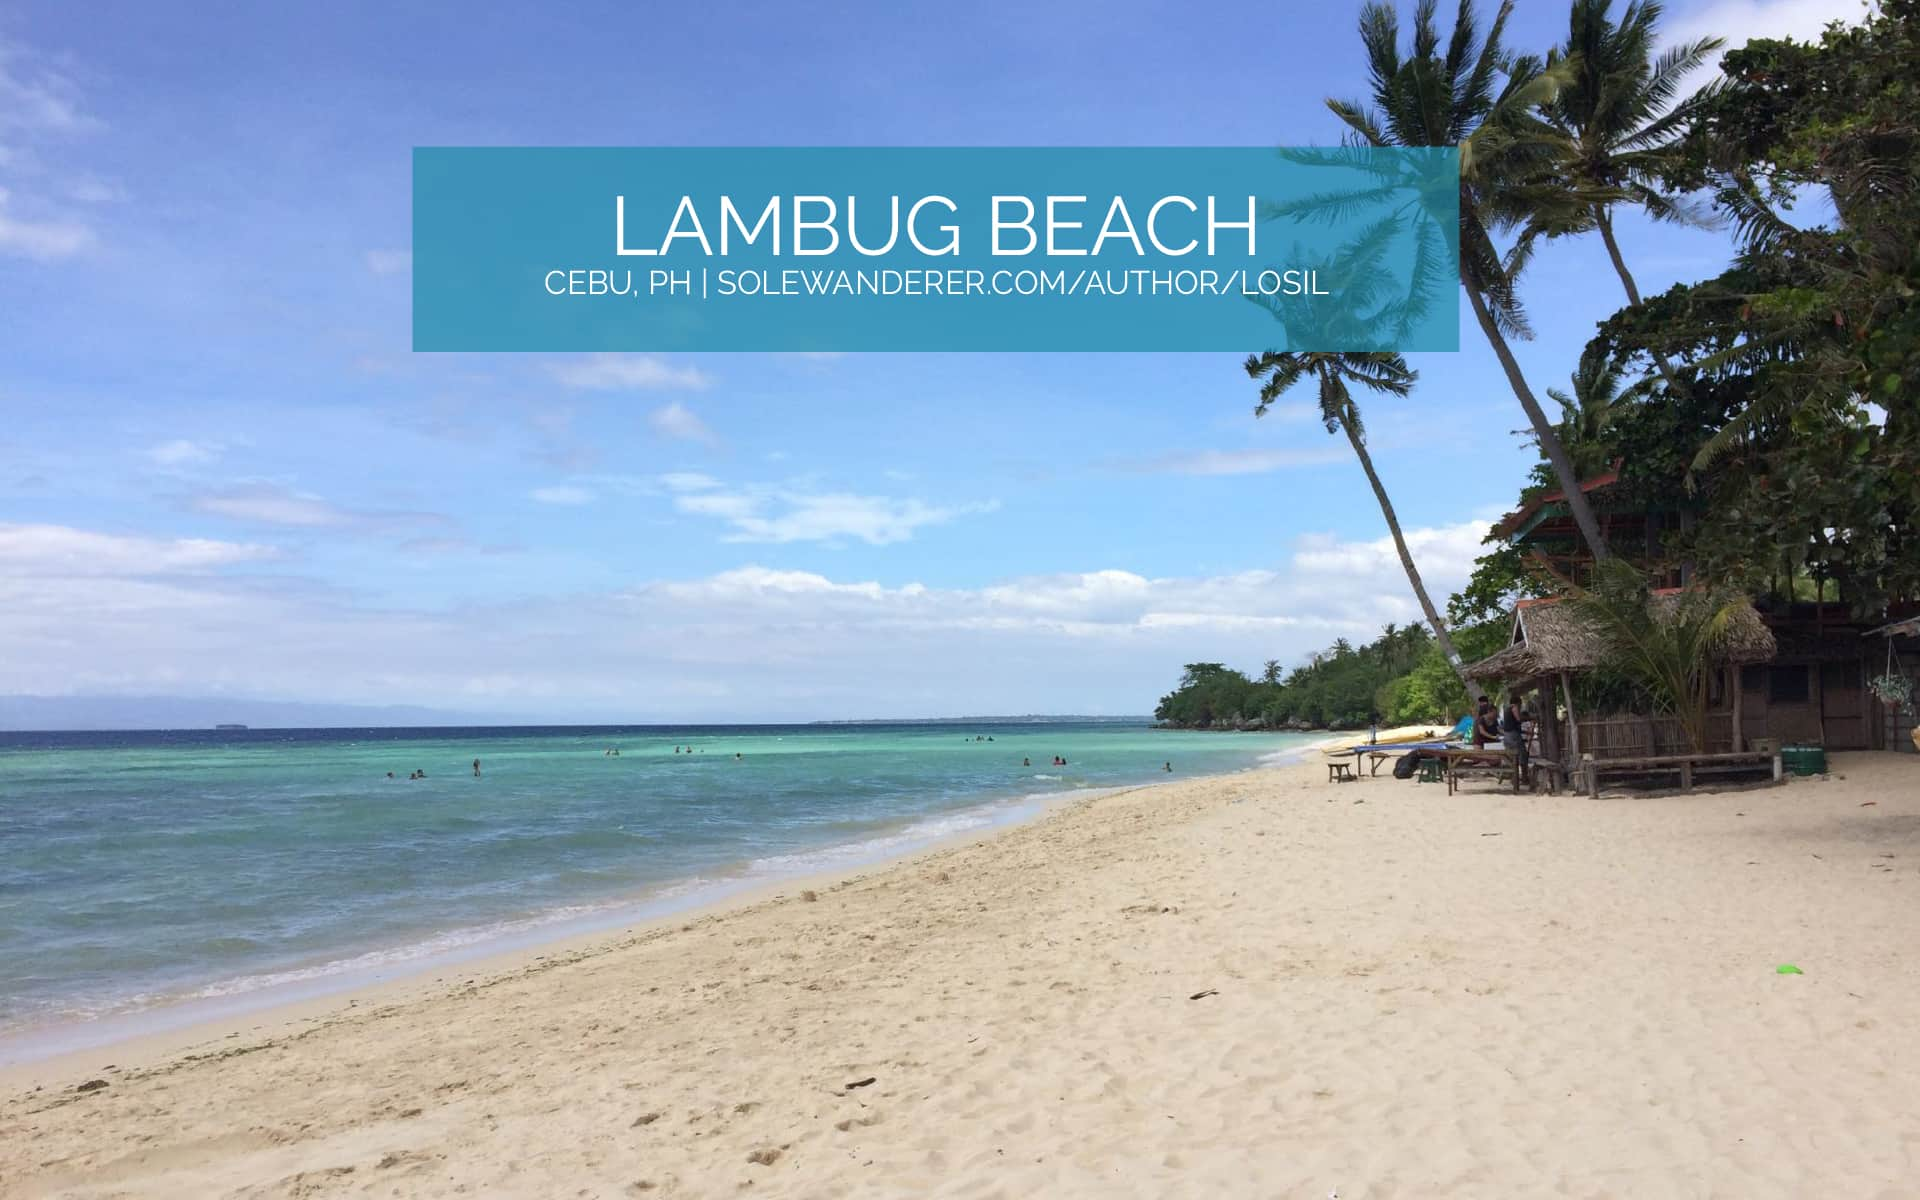 Long-Stretch Beach of Lambug Beach Cebu - The Sole Wanderer